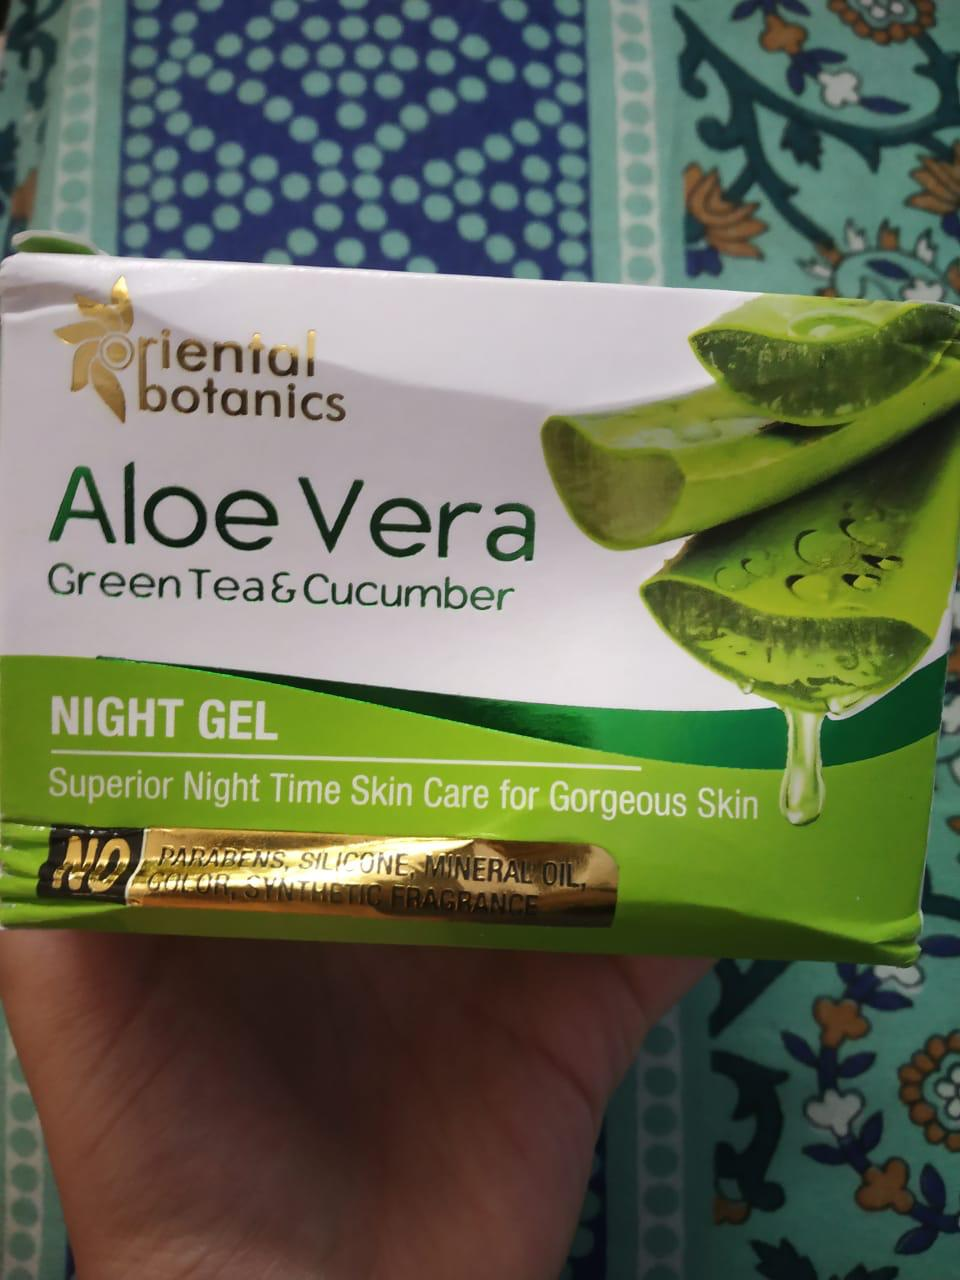 Oriental Botanics Aloe Vera, Green Tea & Cucumber Night Gel-My Favourite aloe vera gel-By swatchifyme-1